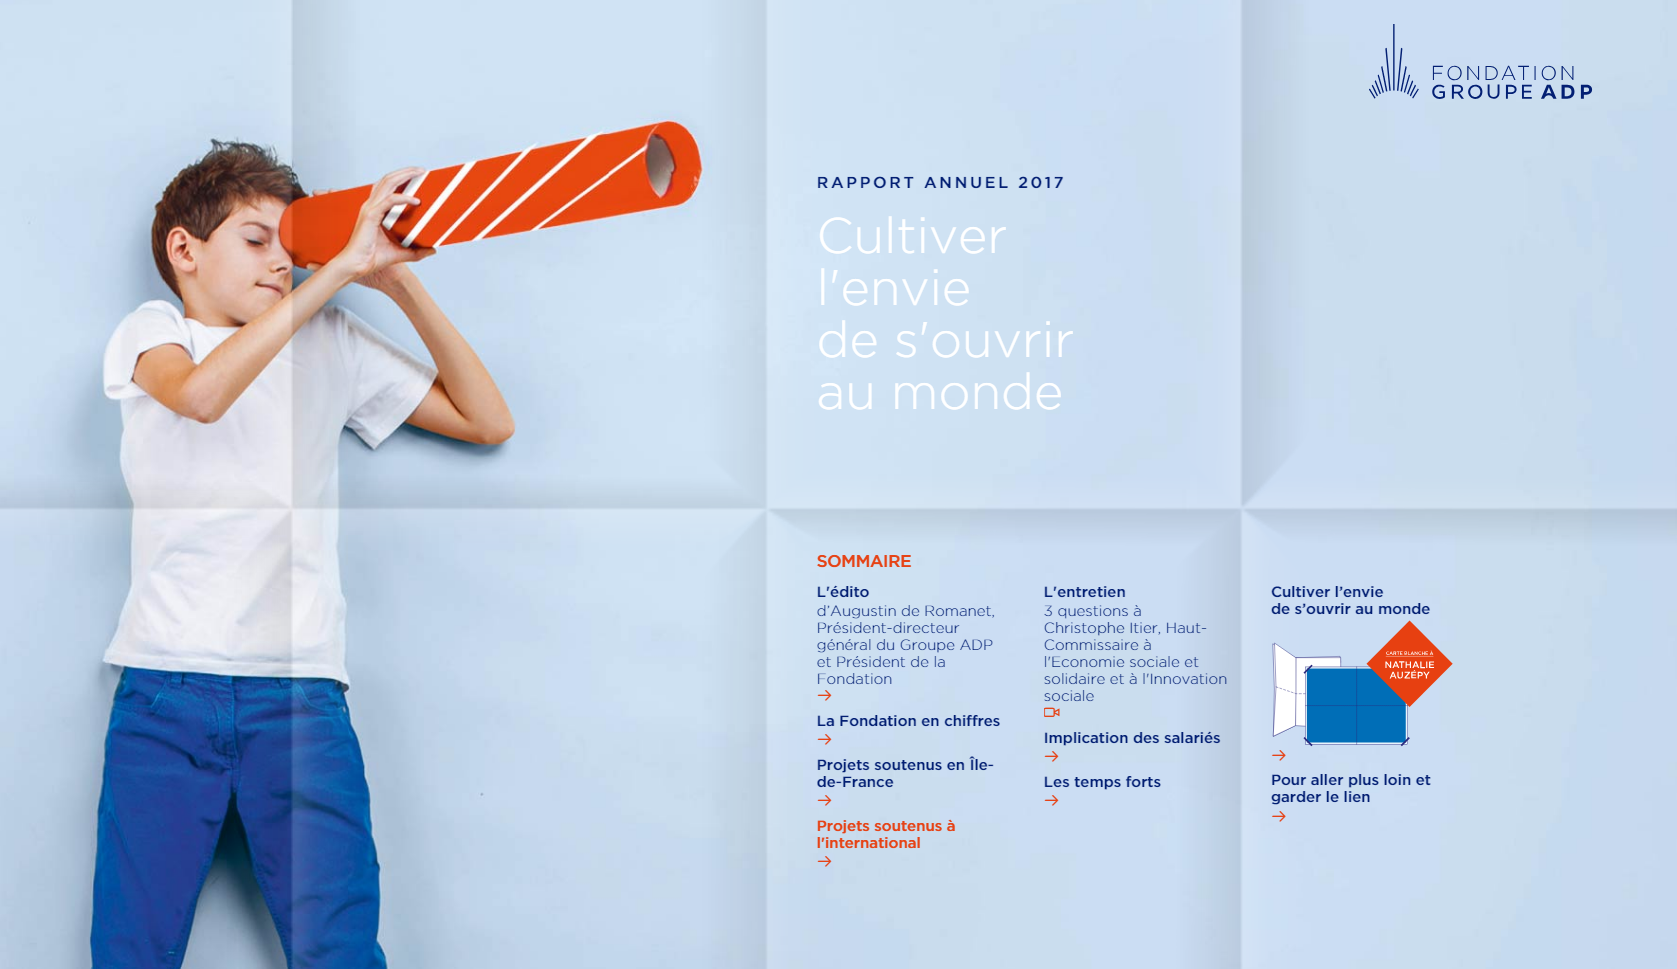 Version digitale du rapport annuel 2017